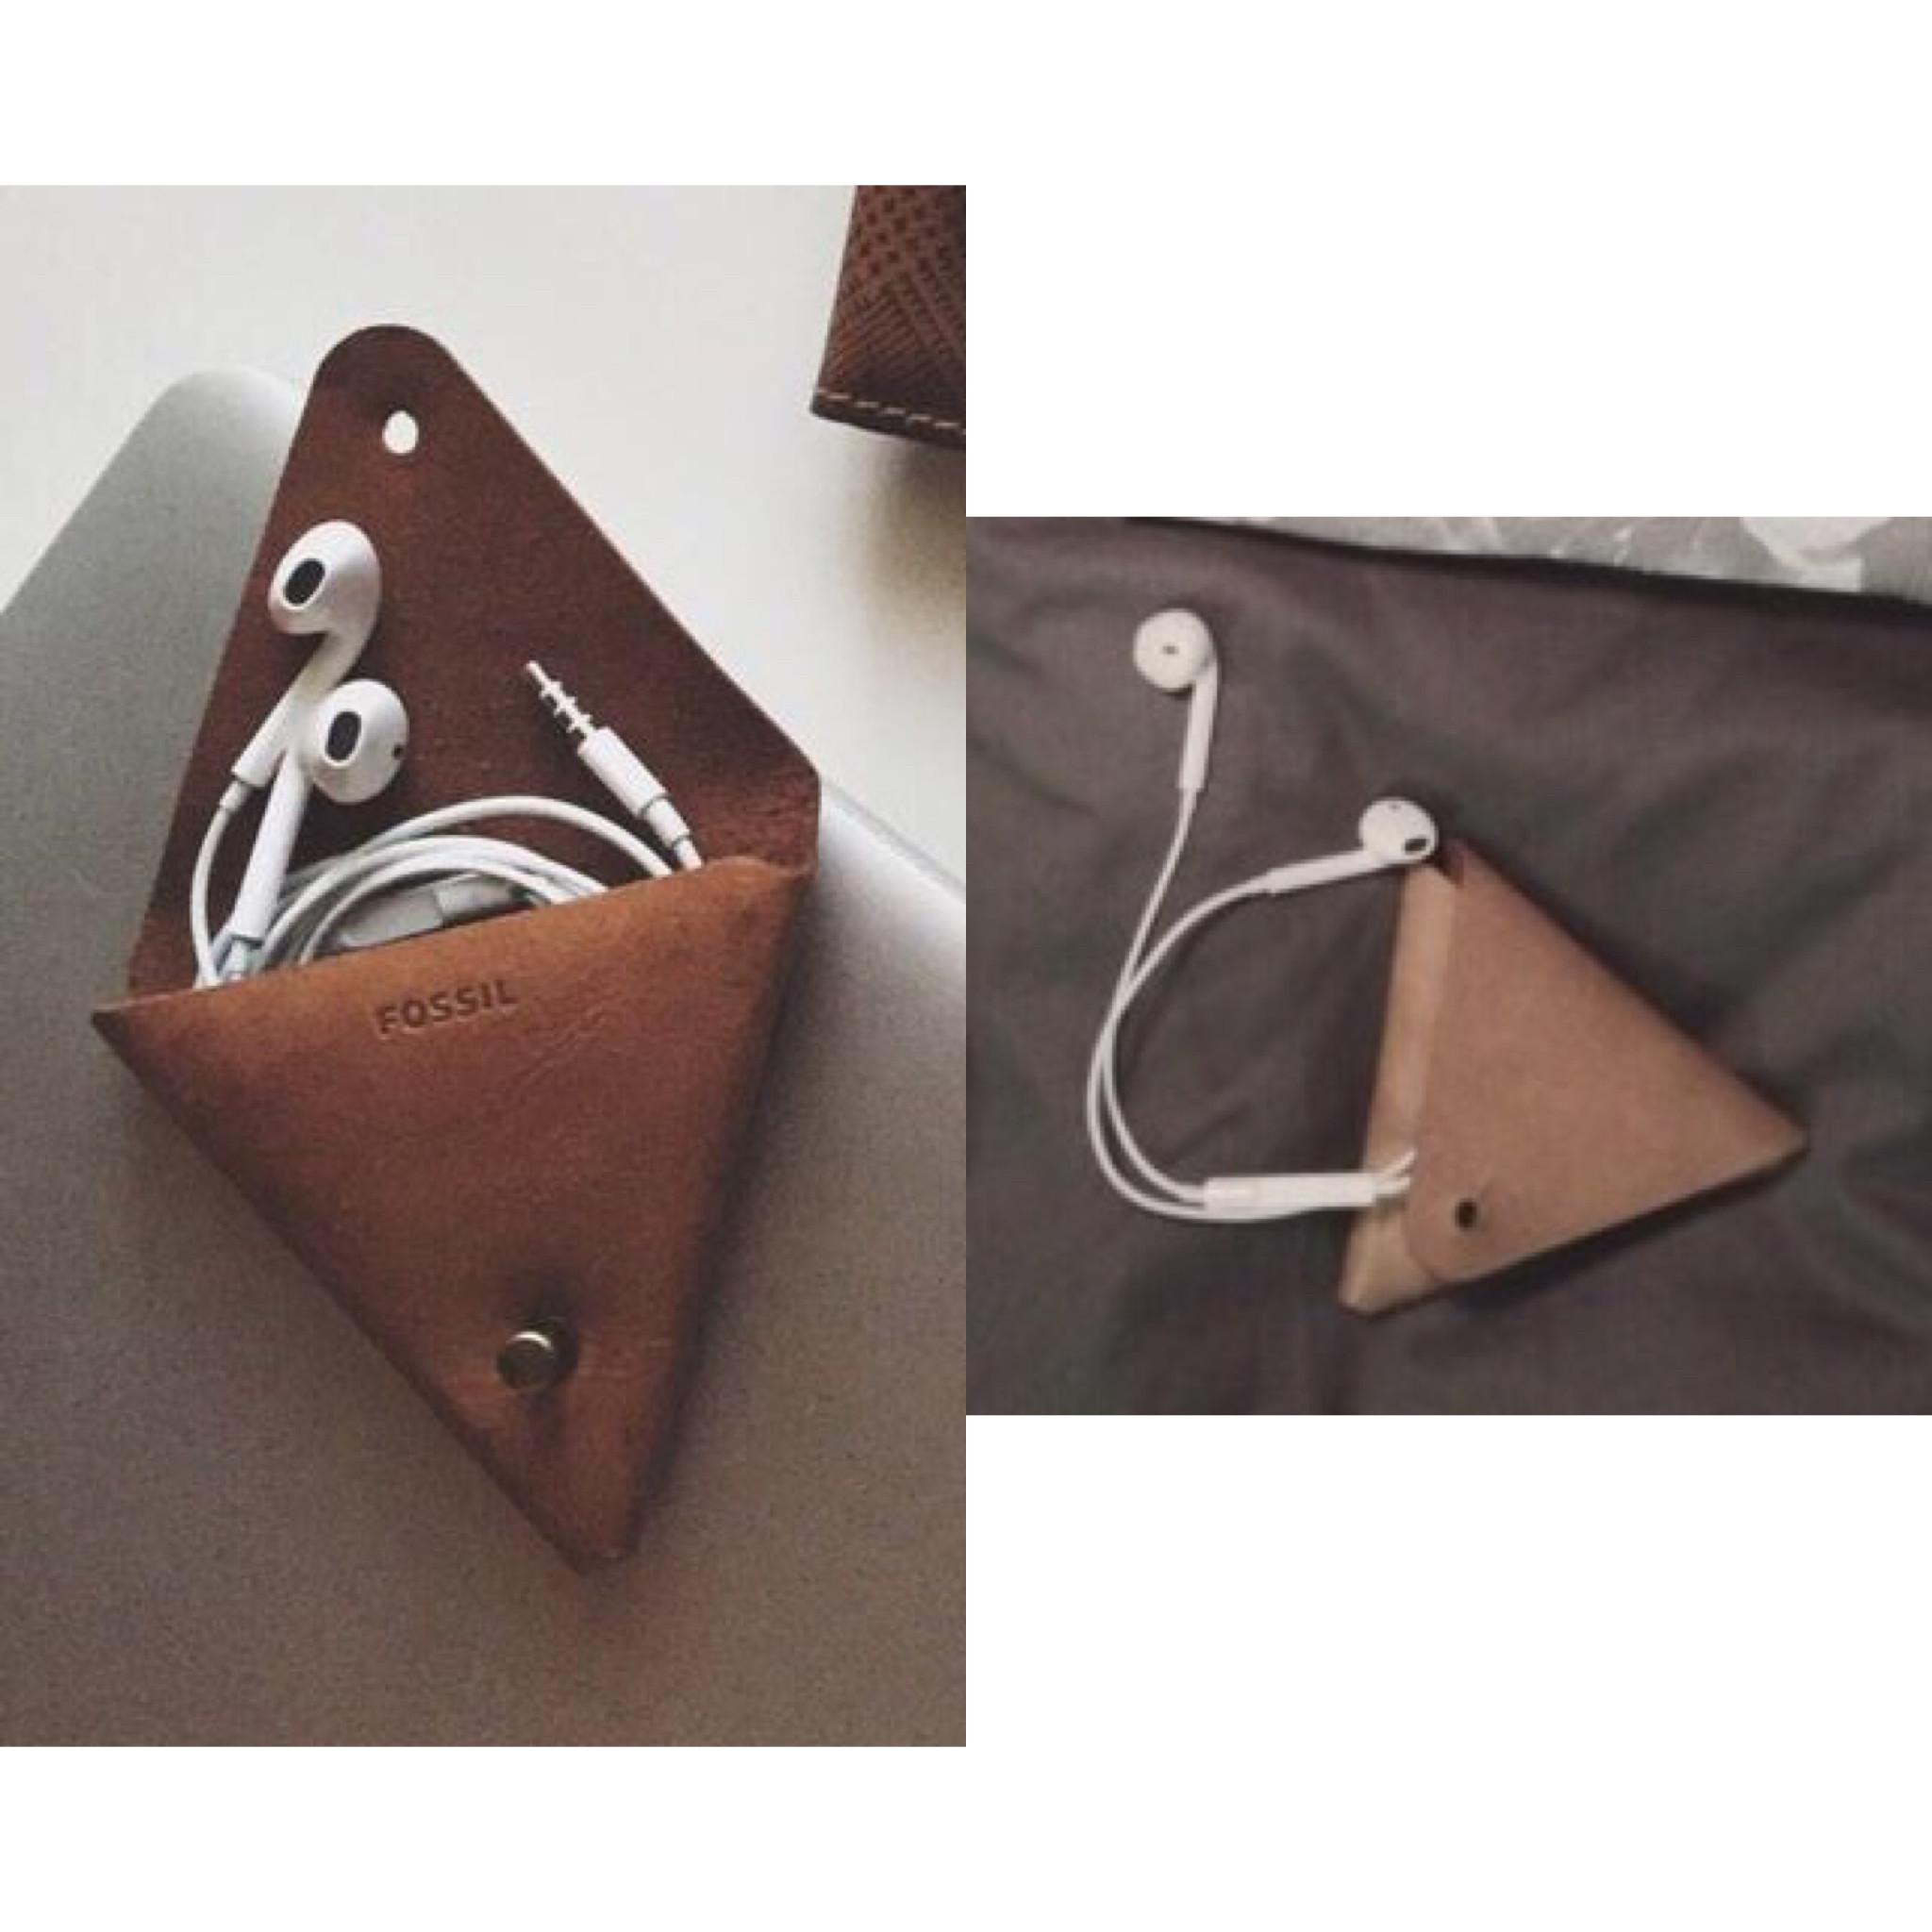 Fossil Leather Headphones Pouch Hunt